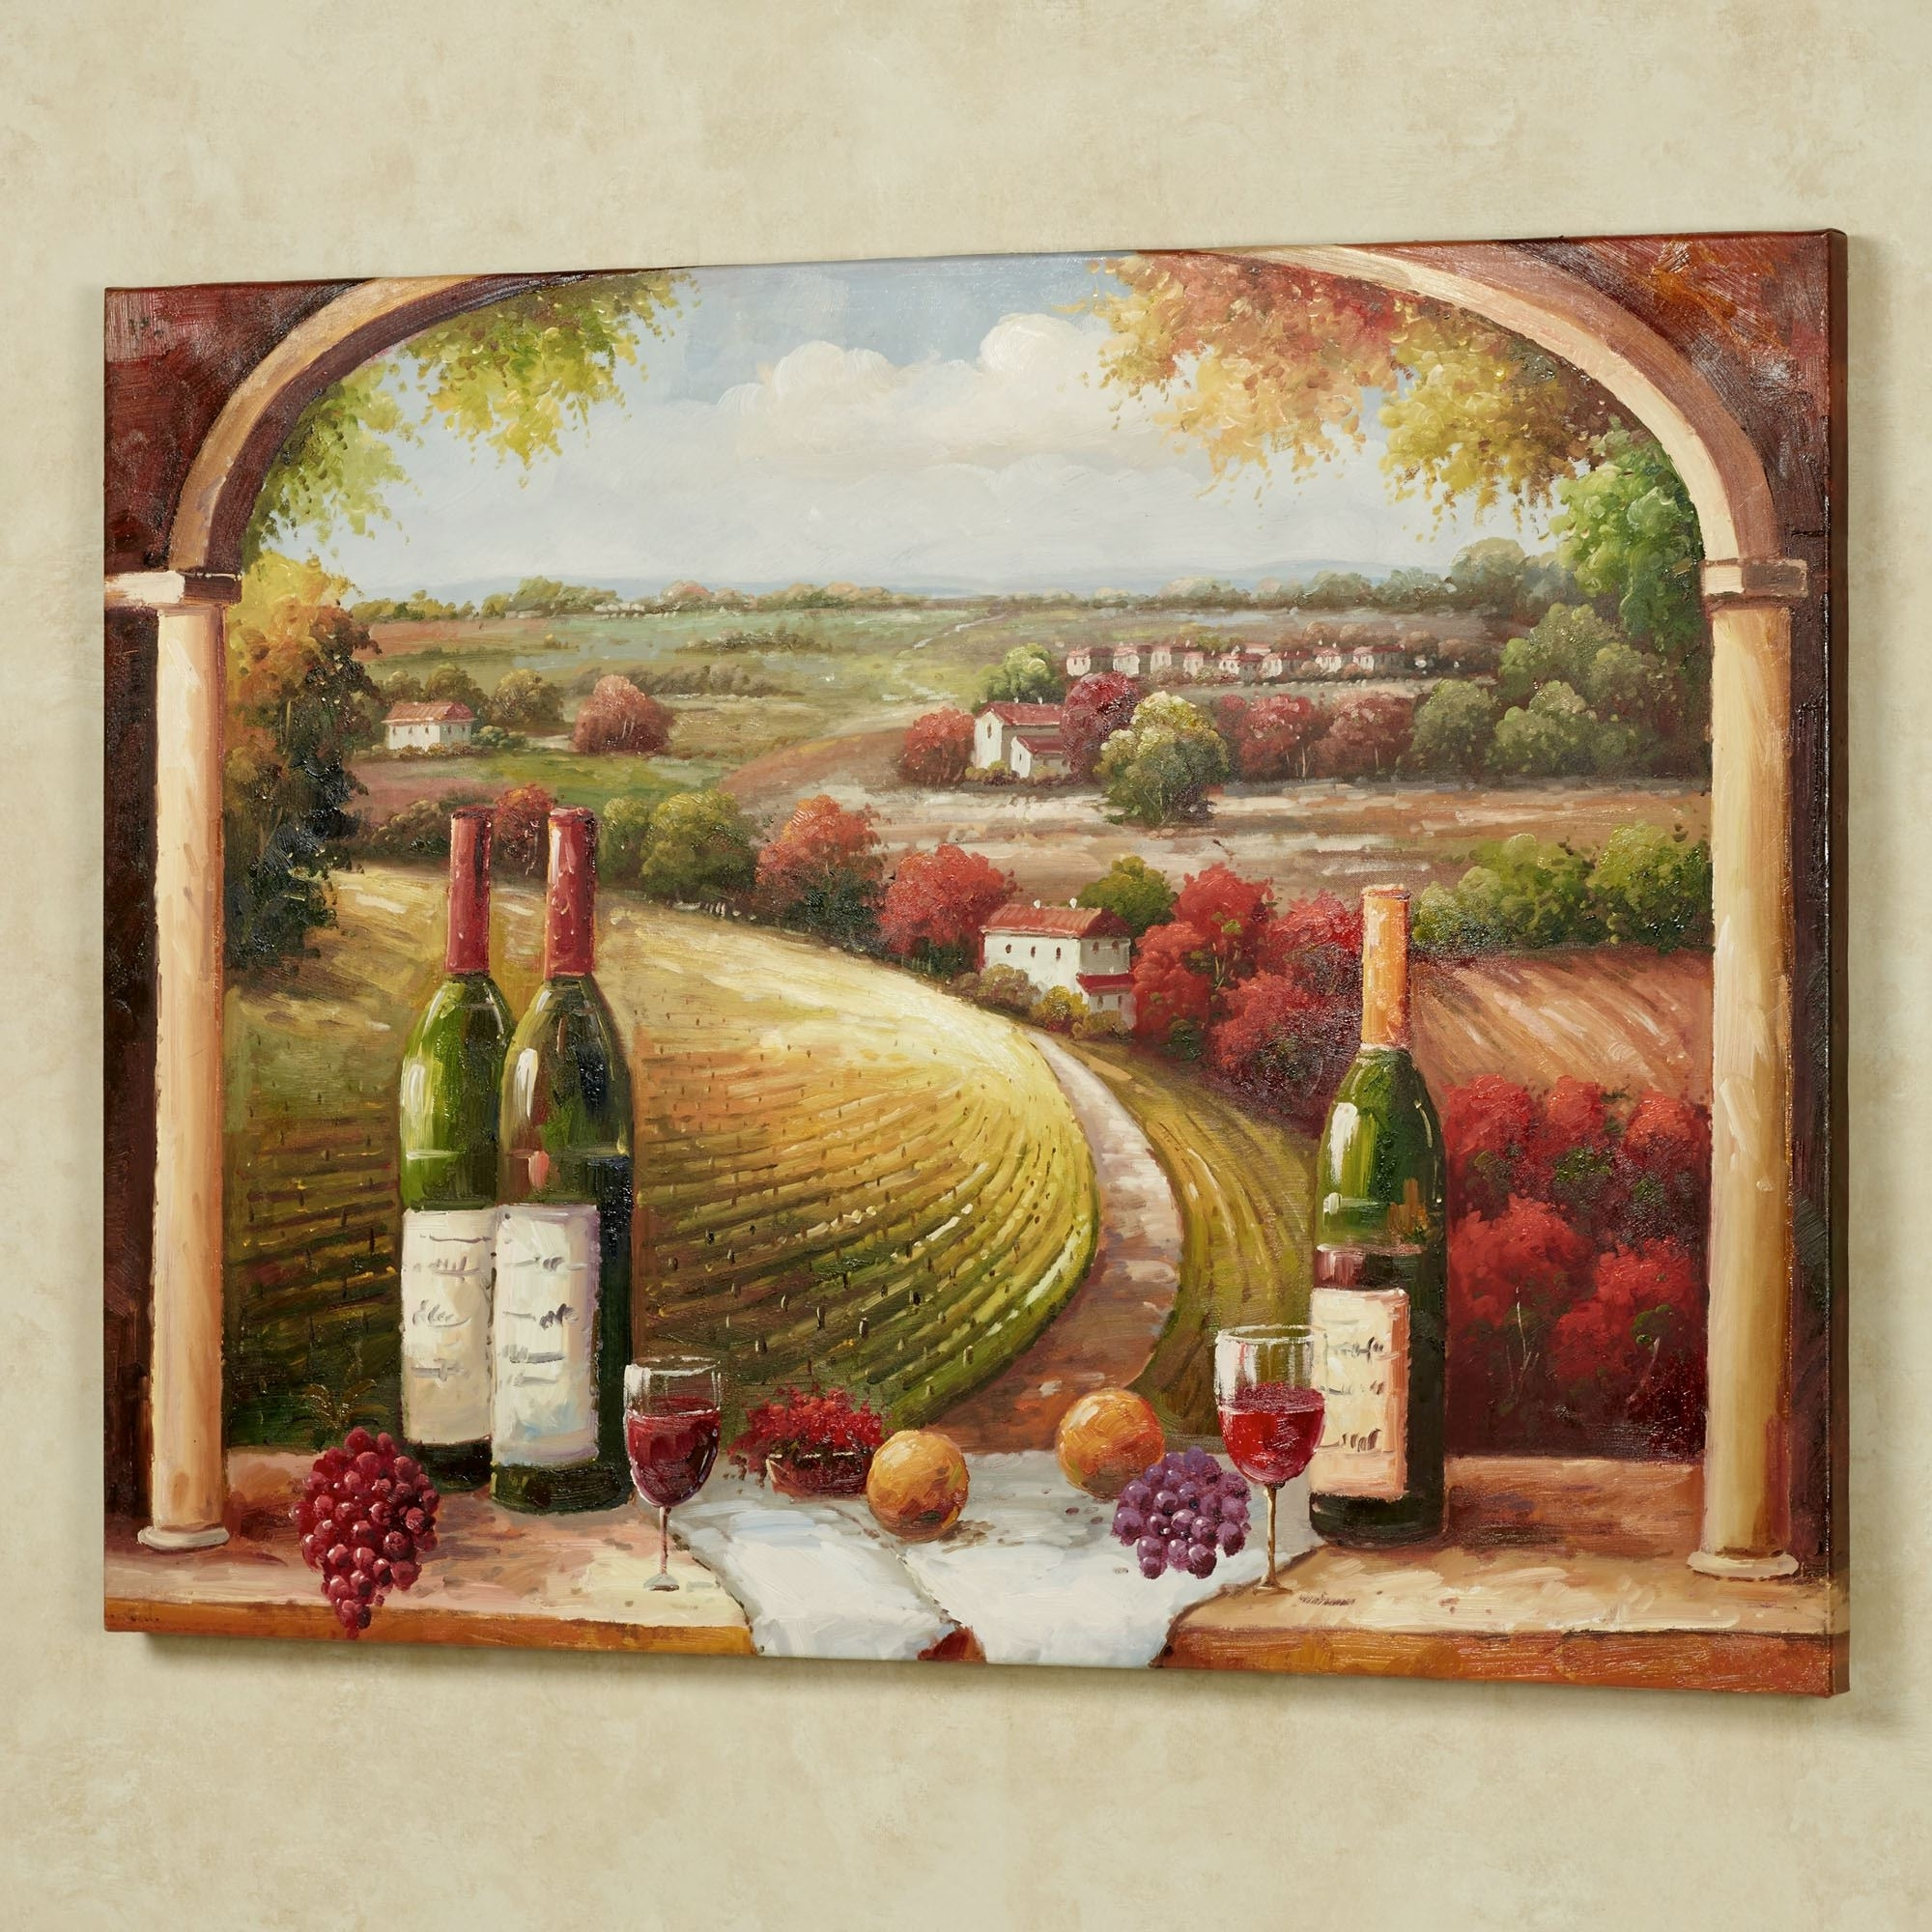 Well Known Italian Wall Art For Sale In Tuscan Italian Art (View 5 of 15)